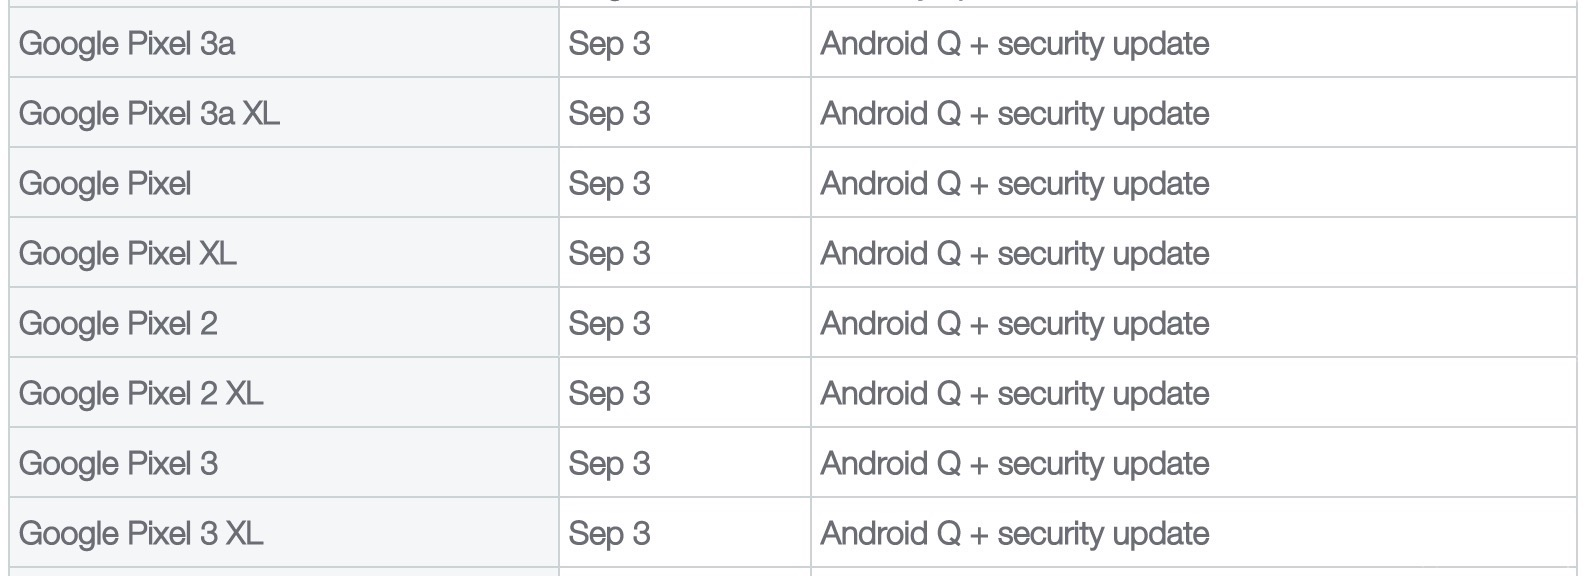 Carriers say Android 10 launch date is September 3 - 9to5Google